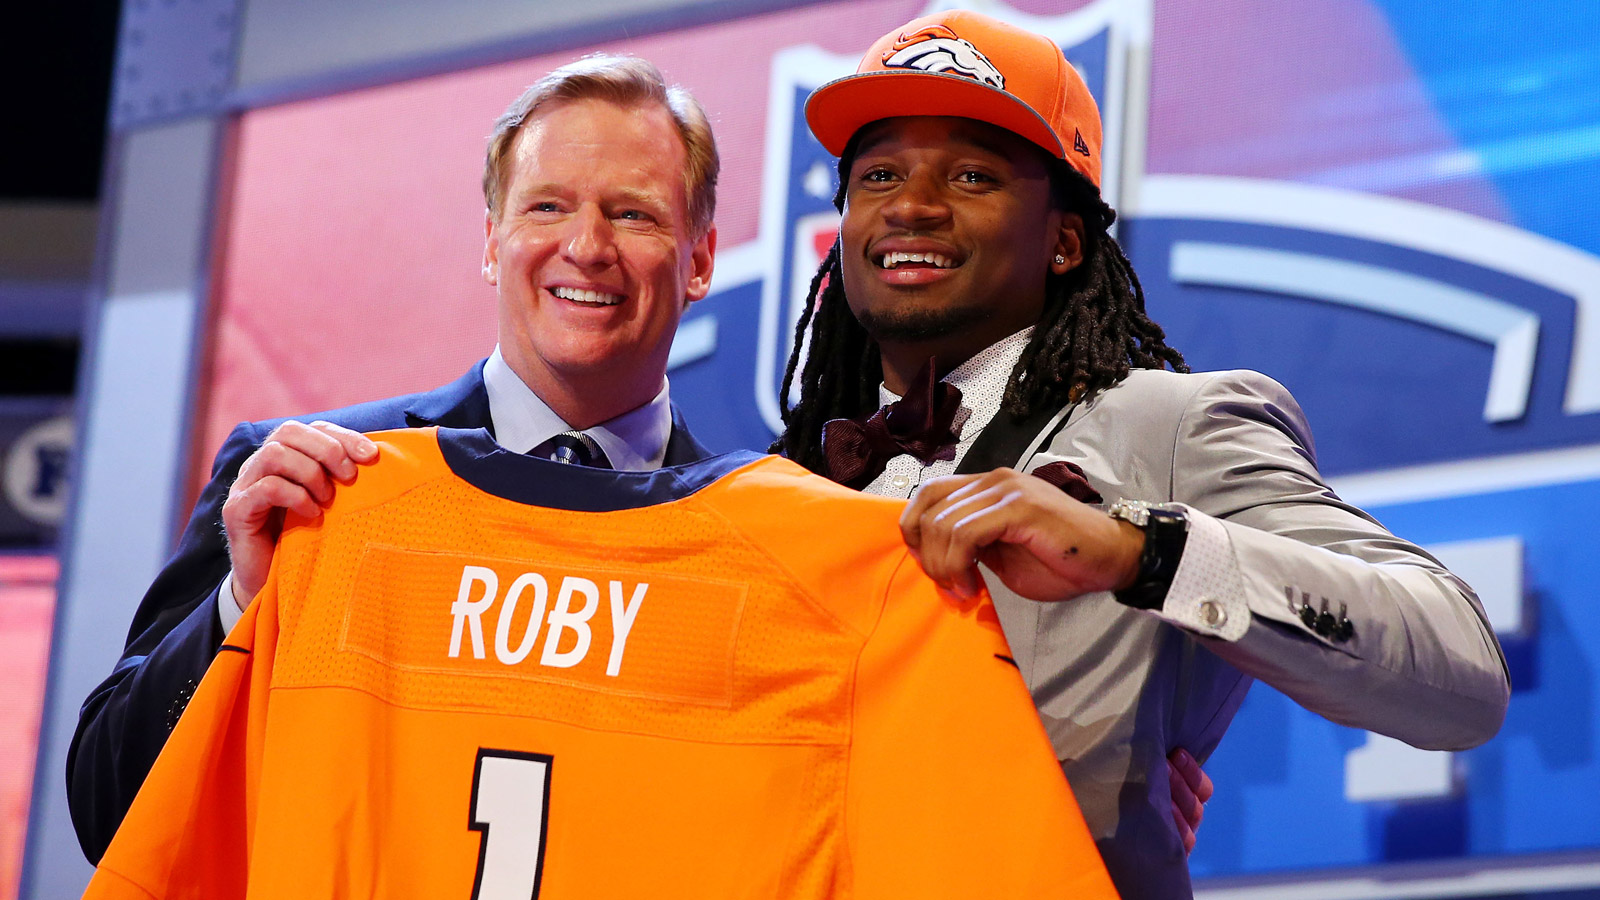 Bradley Roby of the Ohio State Buckeyes poses with NFL Commissioner Roger Goodell after he was picked #31 overall by the Denver Broncos during the first round of the 2014 NFL Draft at Radio City Music Hall on May 8, 2014 in New York City.  (Photo by Elsa/Getty Images)